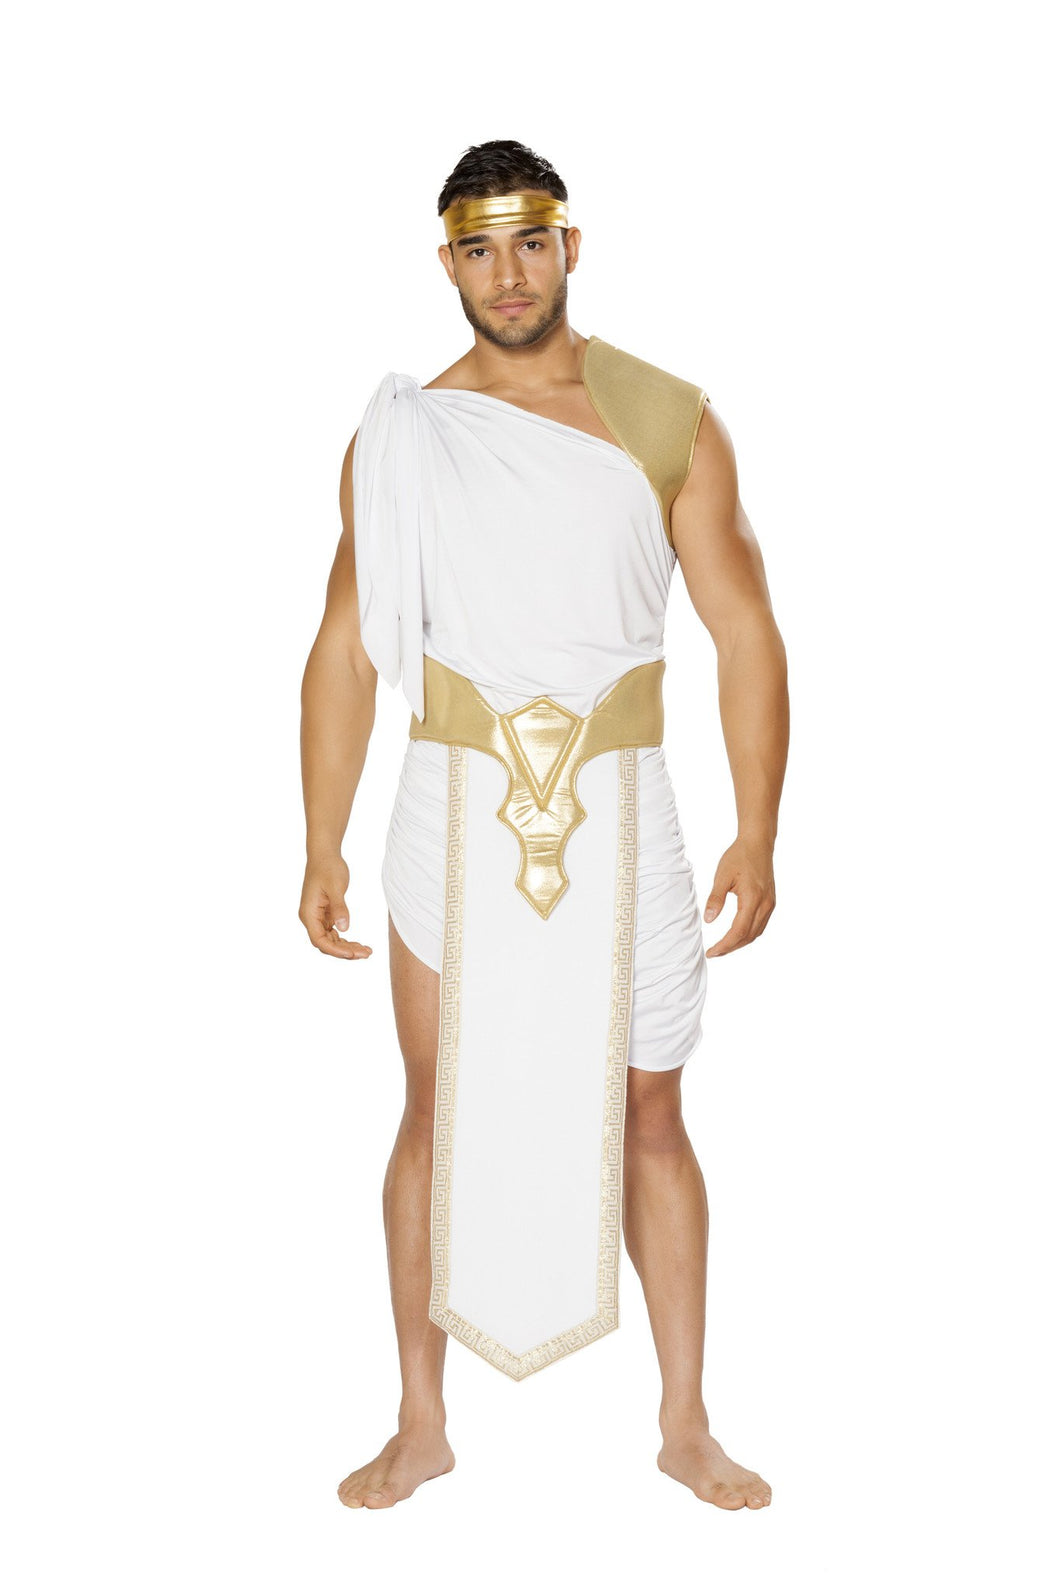 4747 - 3pc Greek God